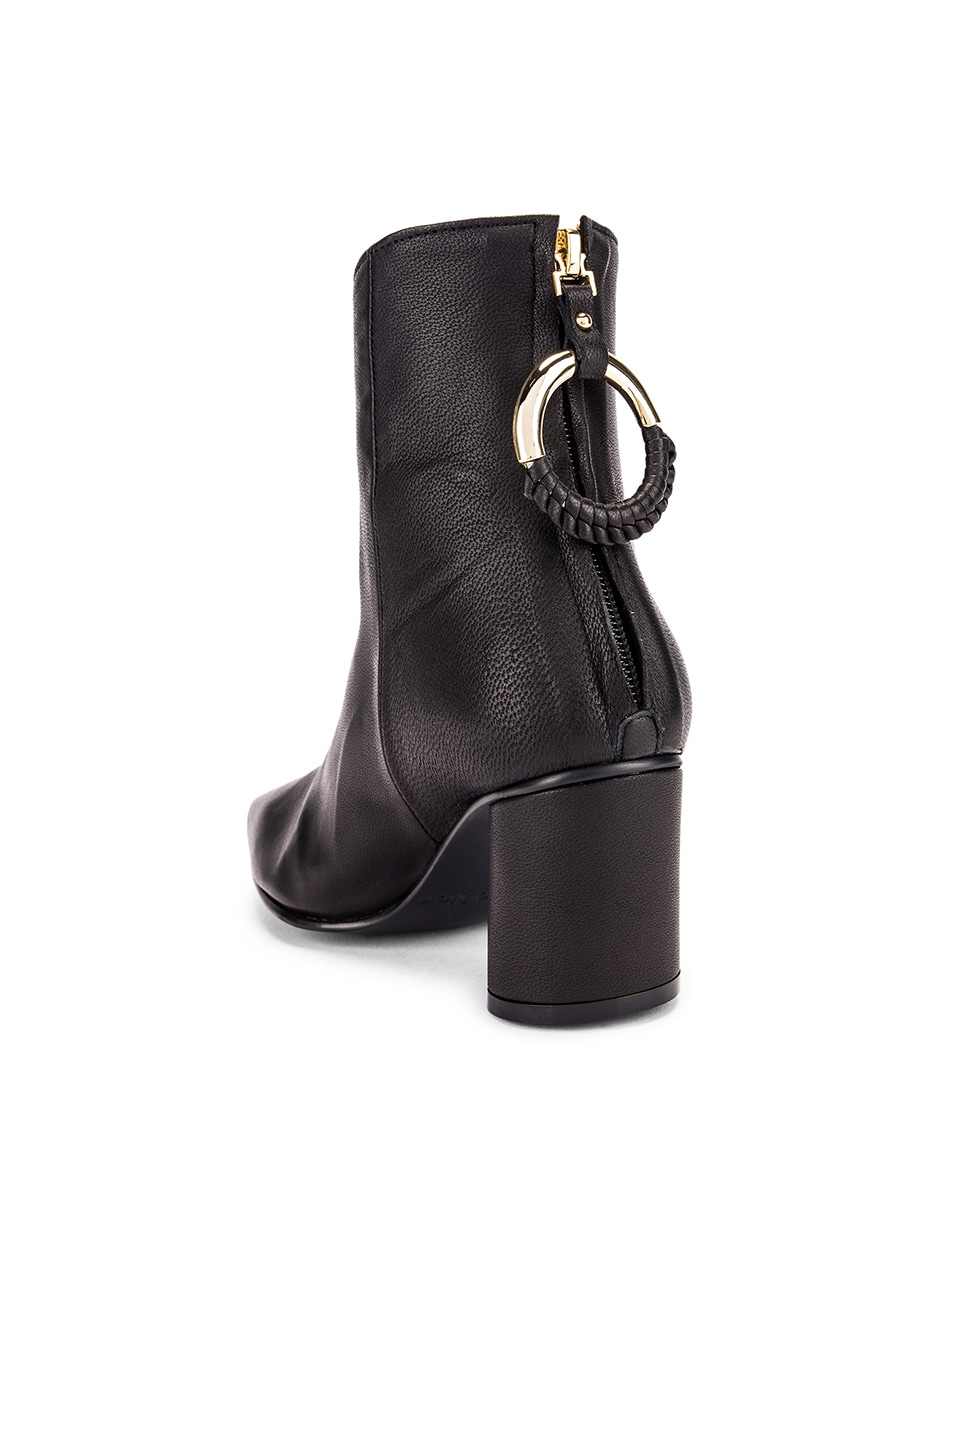 Image 3 of Reike Nen Oblique Turnover Ring Boots in Black